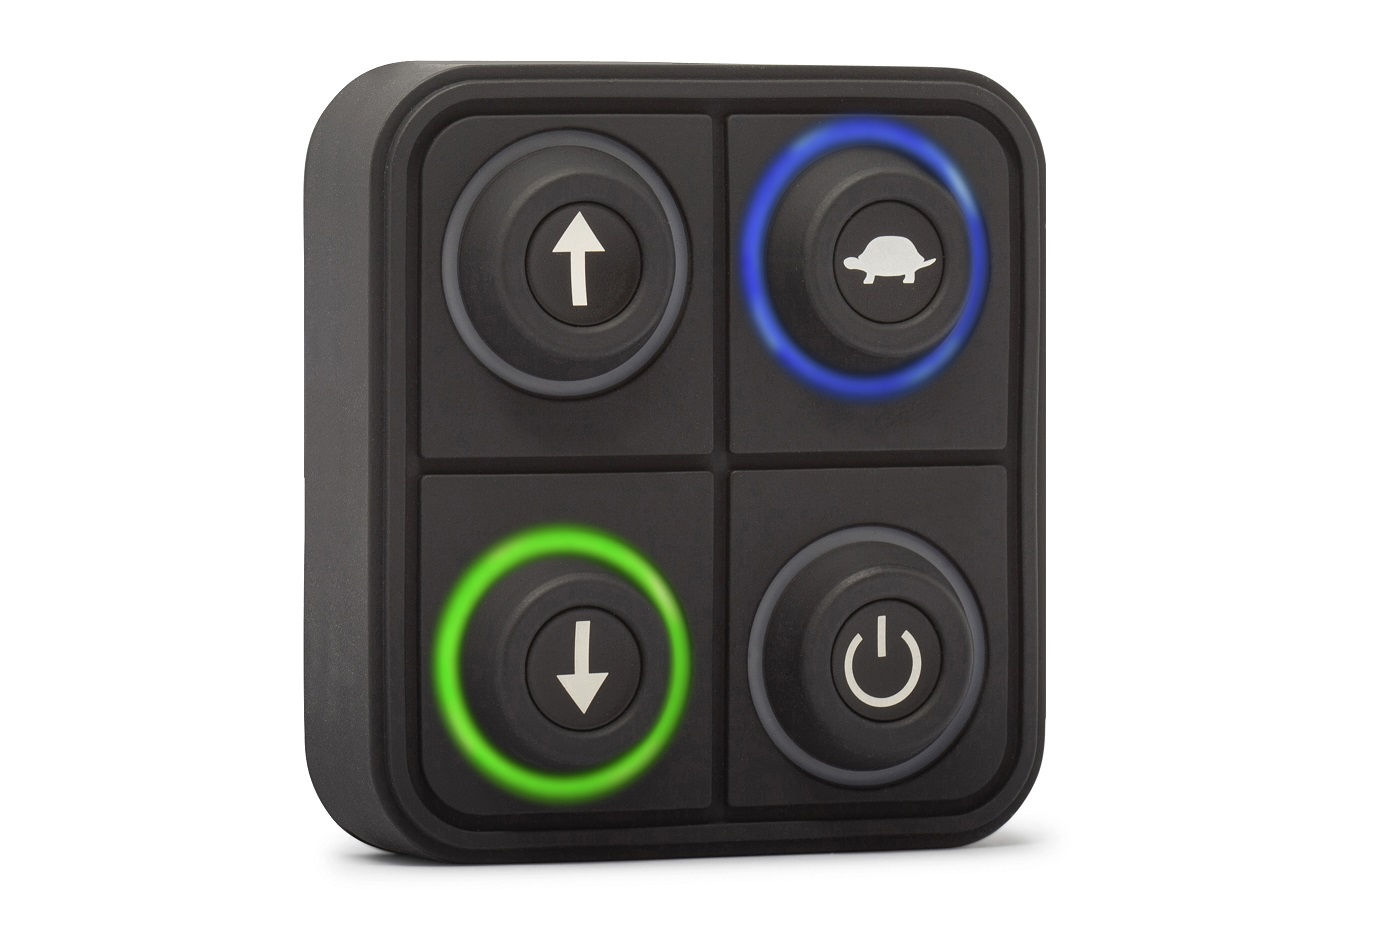 4 button CANBUS keypad